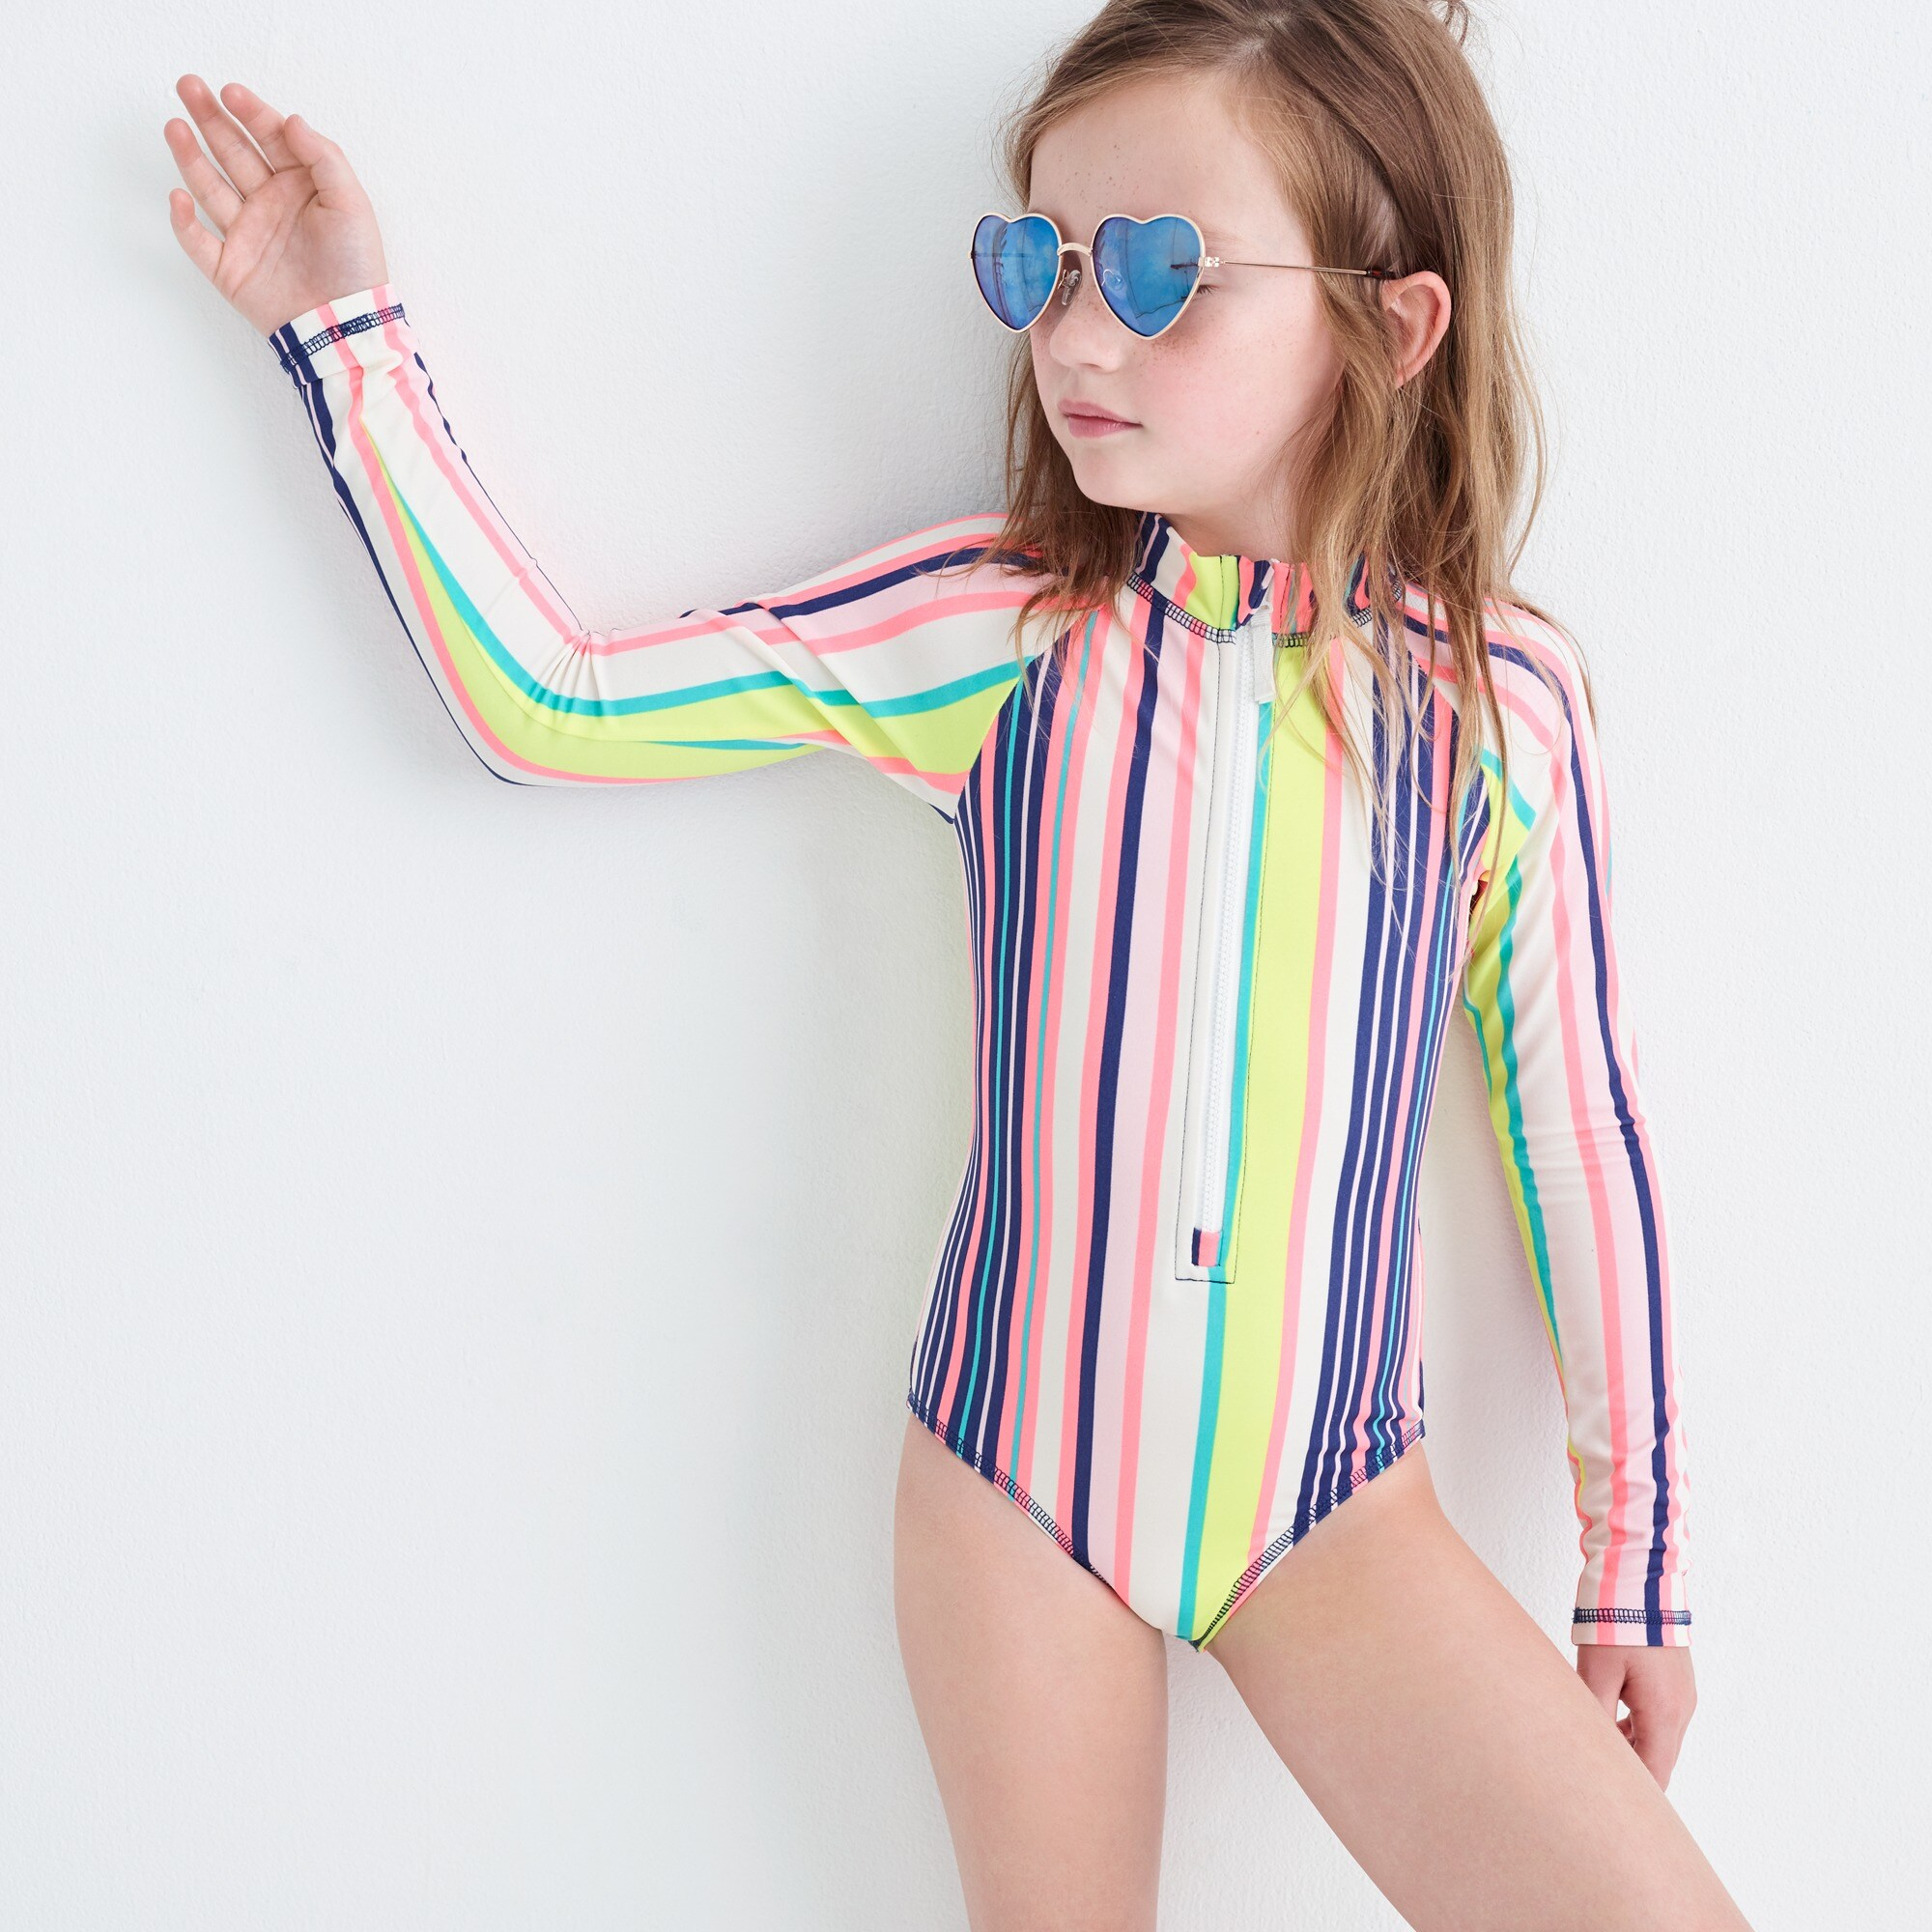 girls Girls' long-sleeve one-piece swimsuit in pink stripe